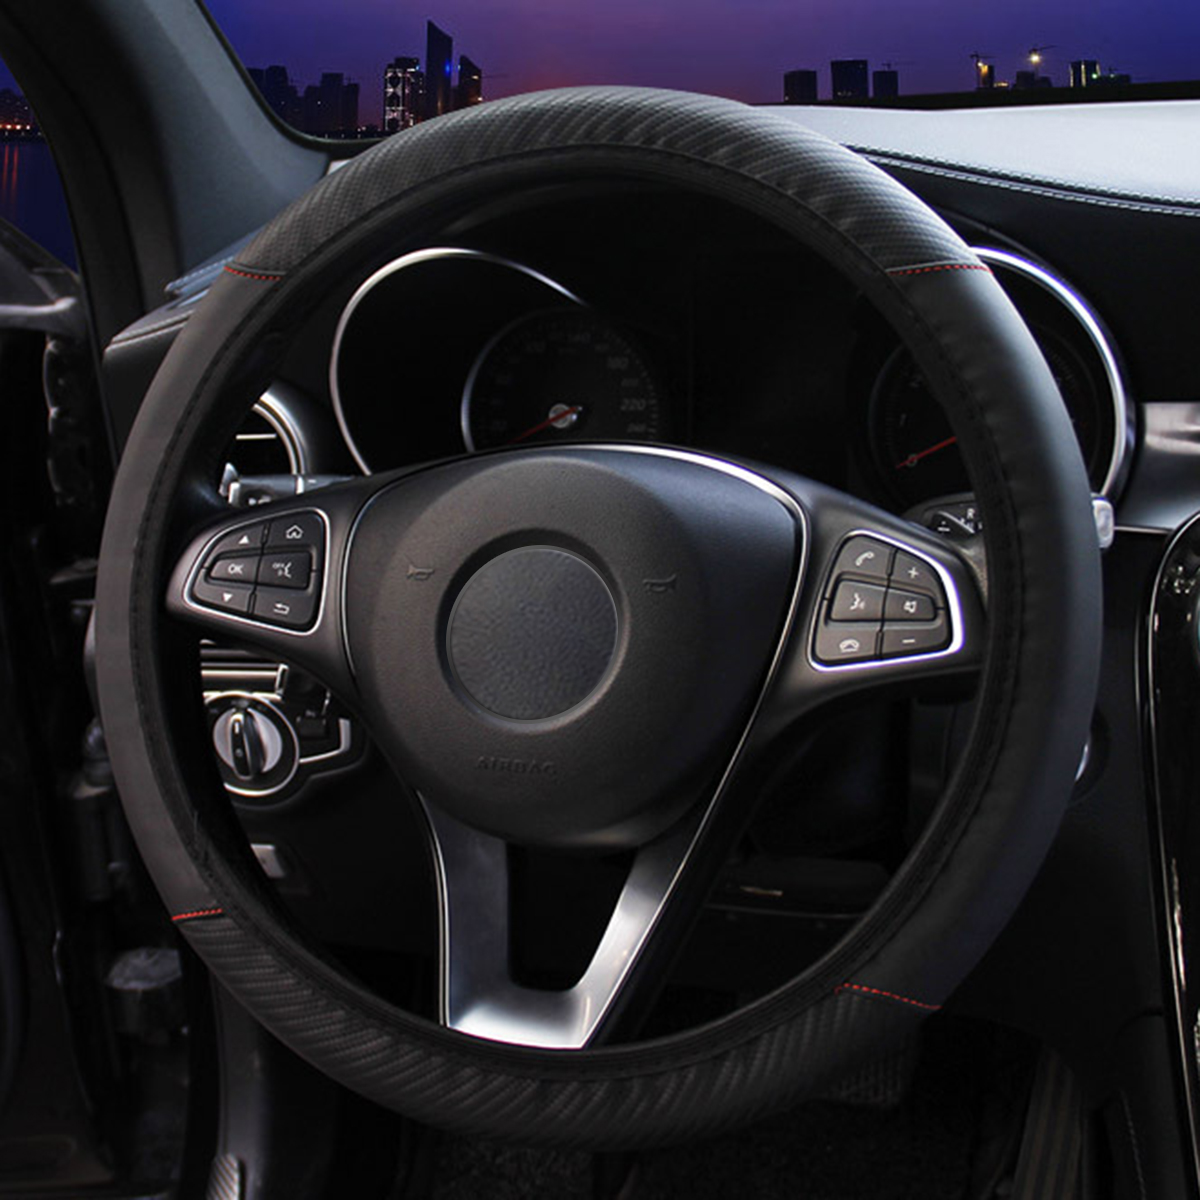 Universal Carbon Fiber PU Leather Car Steering Wheel Cover Protective